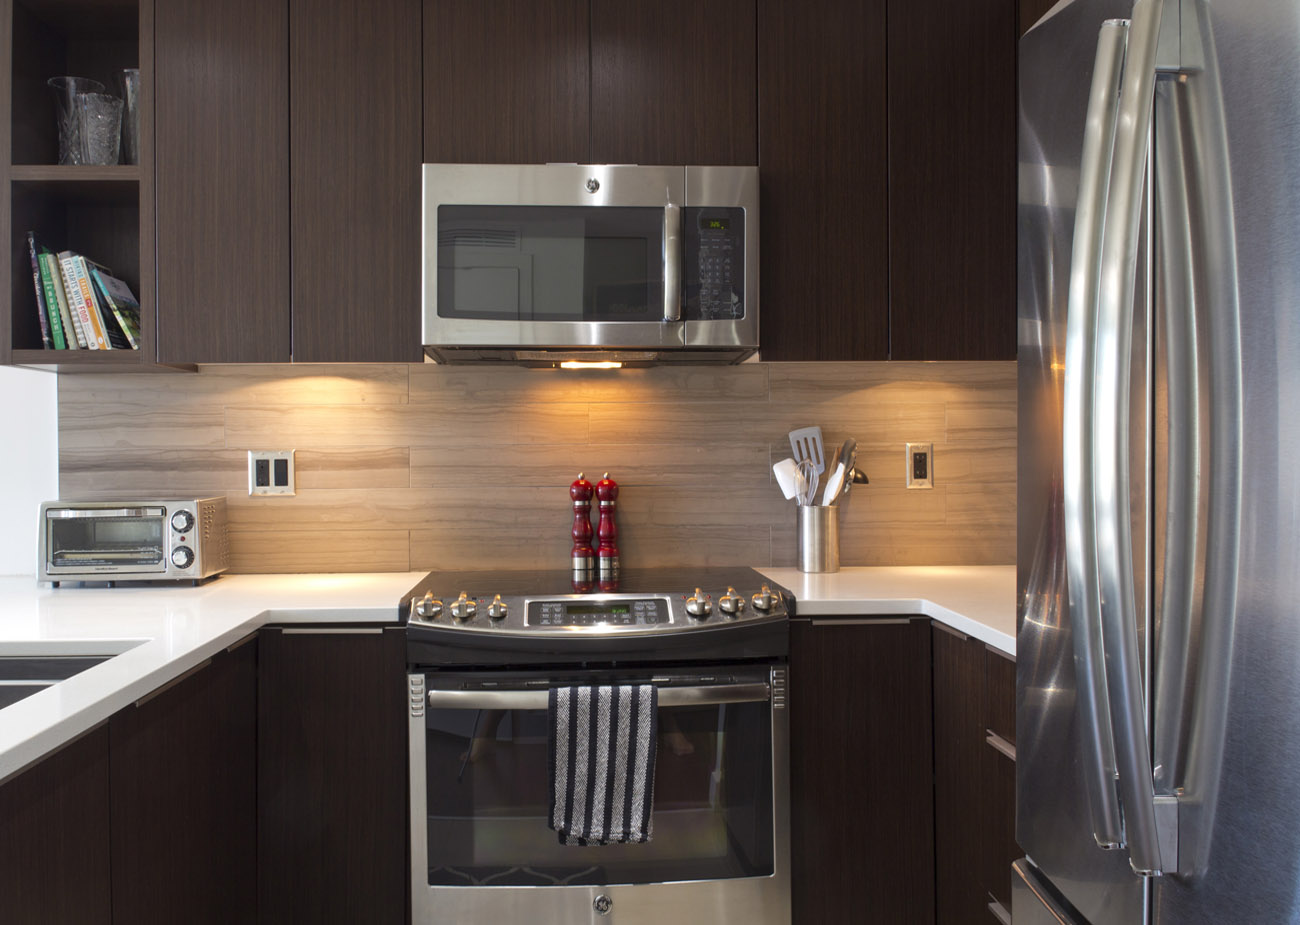 Suite kitchen with full size appliances